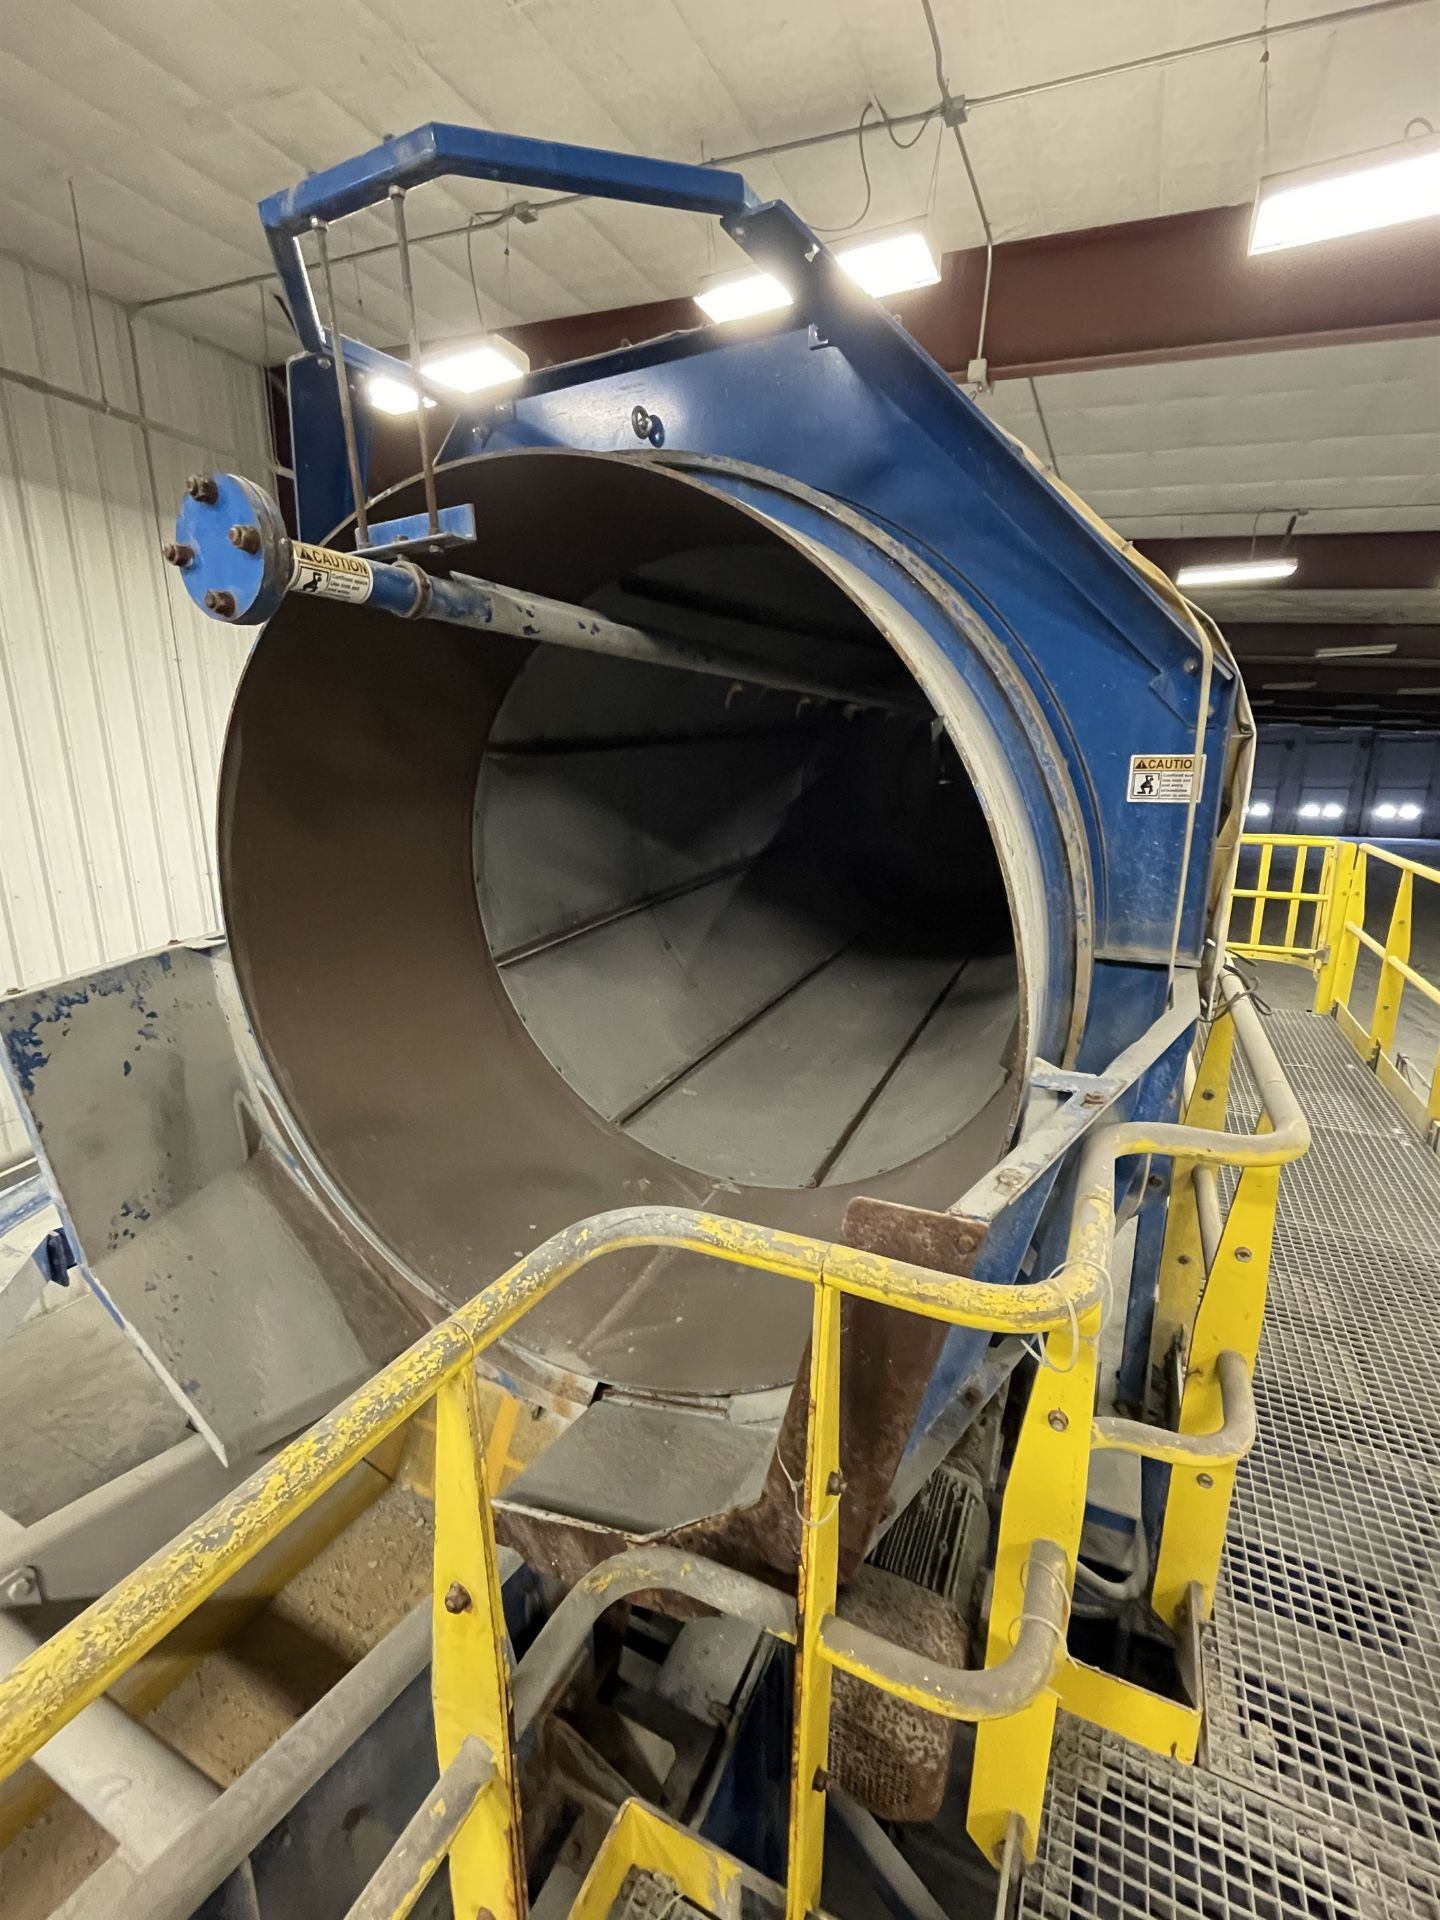 2015 LUBO SYSTEMS WASHING DRUM 1800x5000 Rotary Washing Drum, s/n 800108-0160, 1.8 m Drum - Image 4 of 6